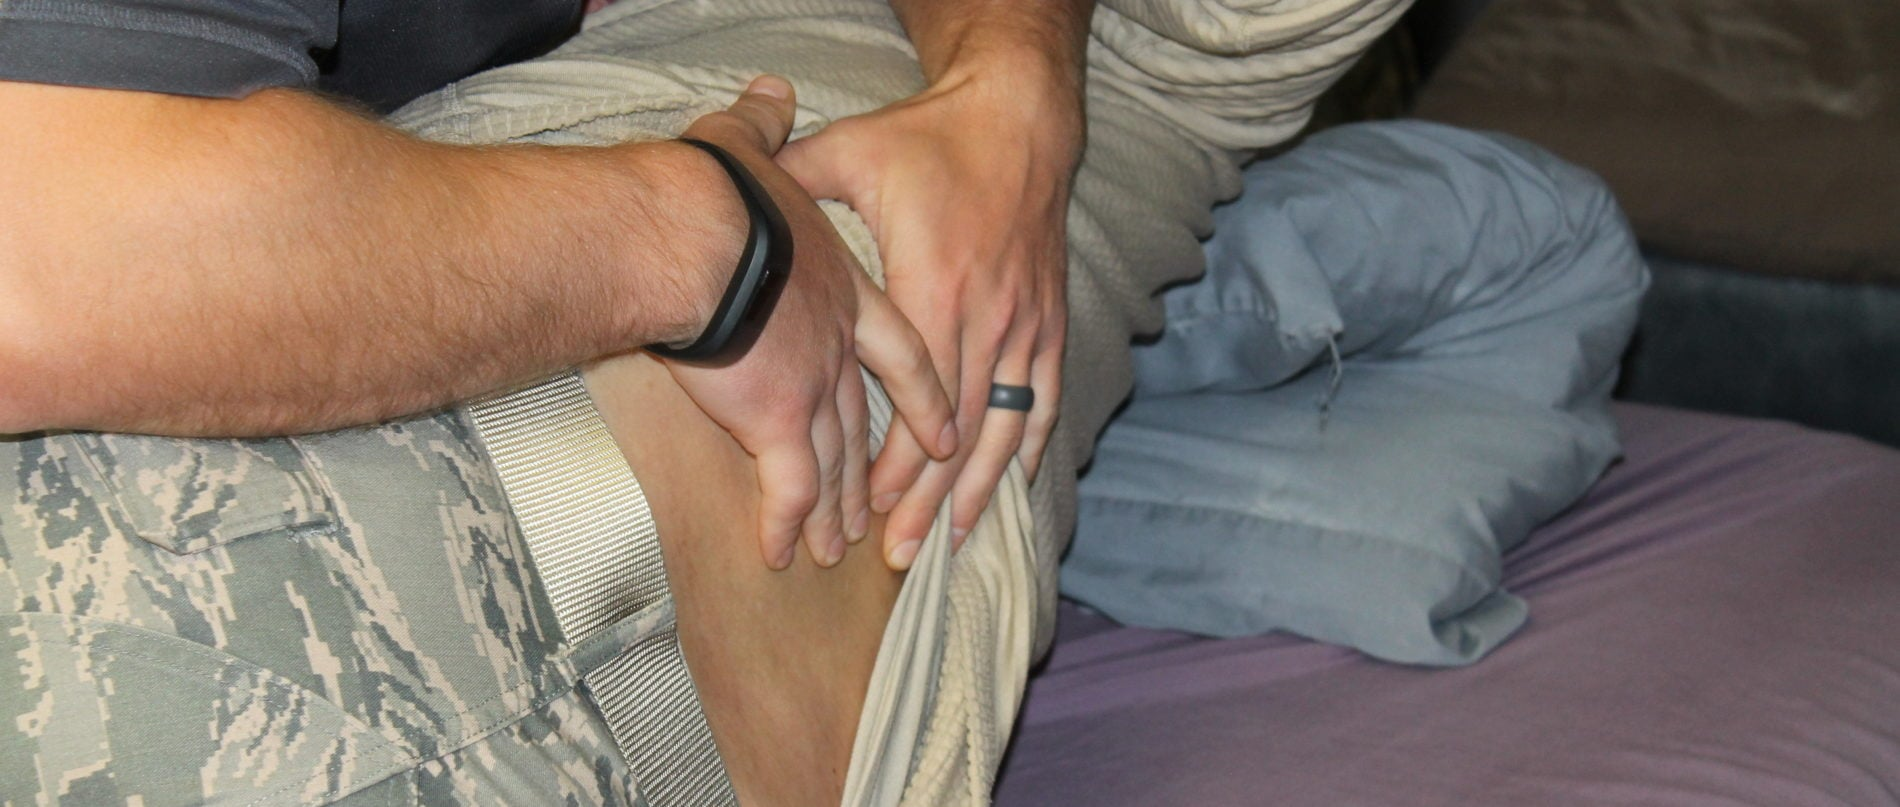 Image of Orthopaedic Manual Therapy